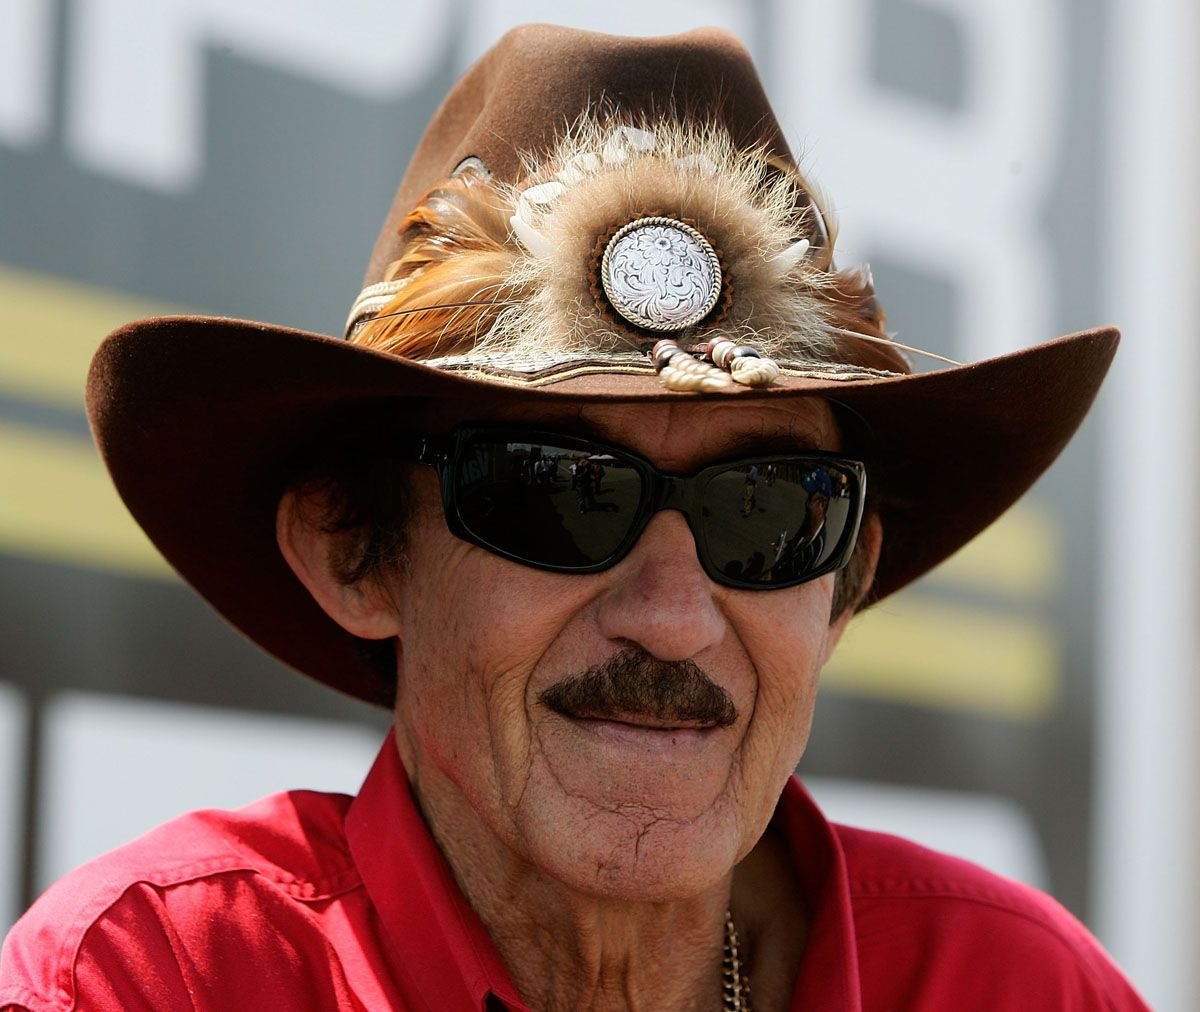 WHAT DO RICHARD PETTY AND BERT CONVY HAVE IN COMMON? - NASCAR ...